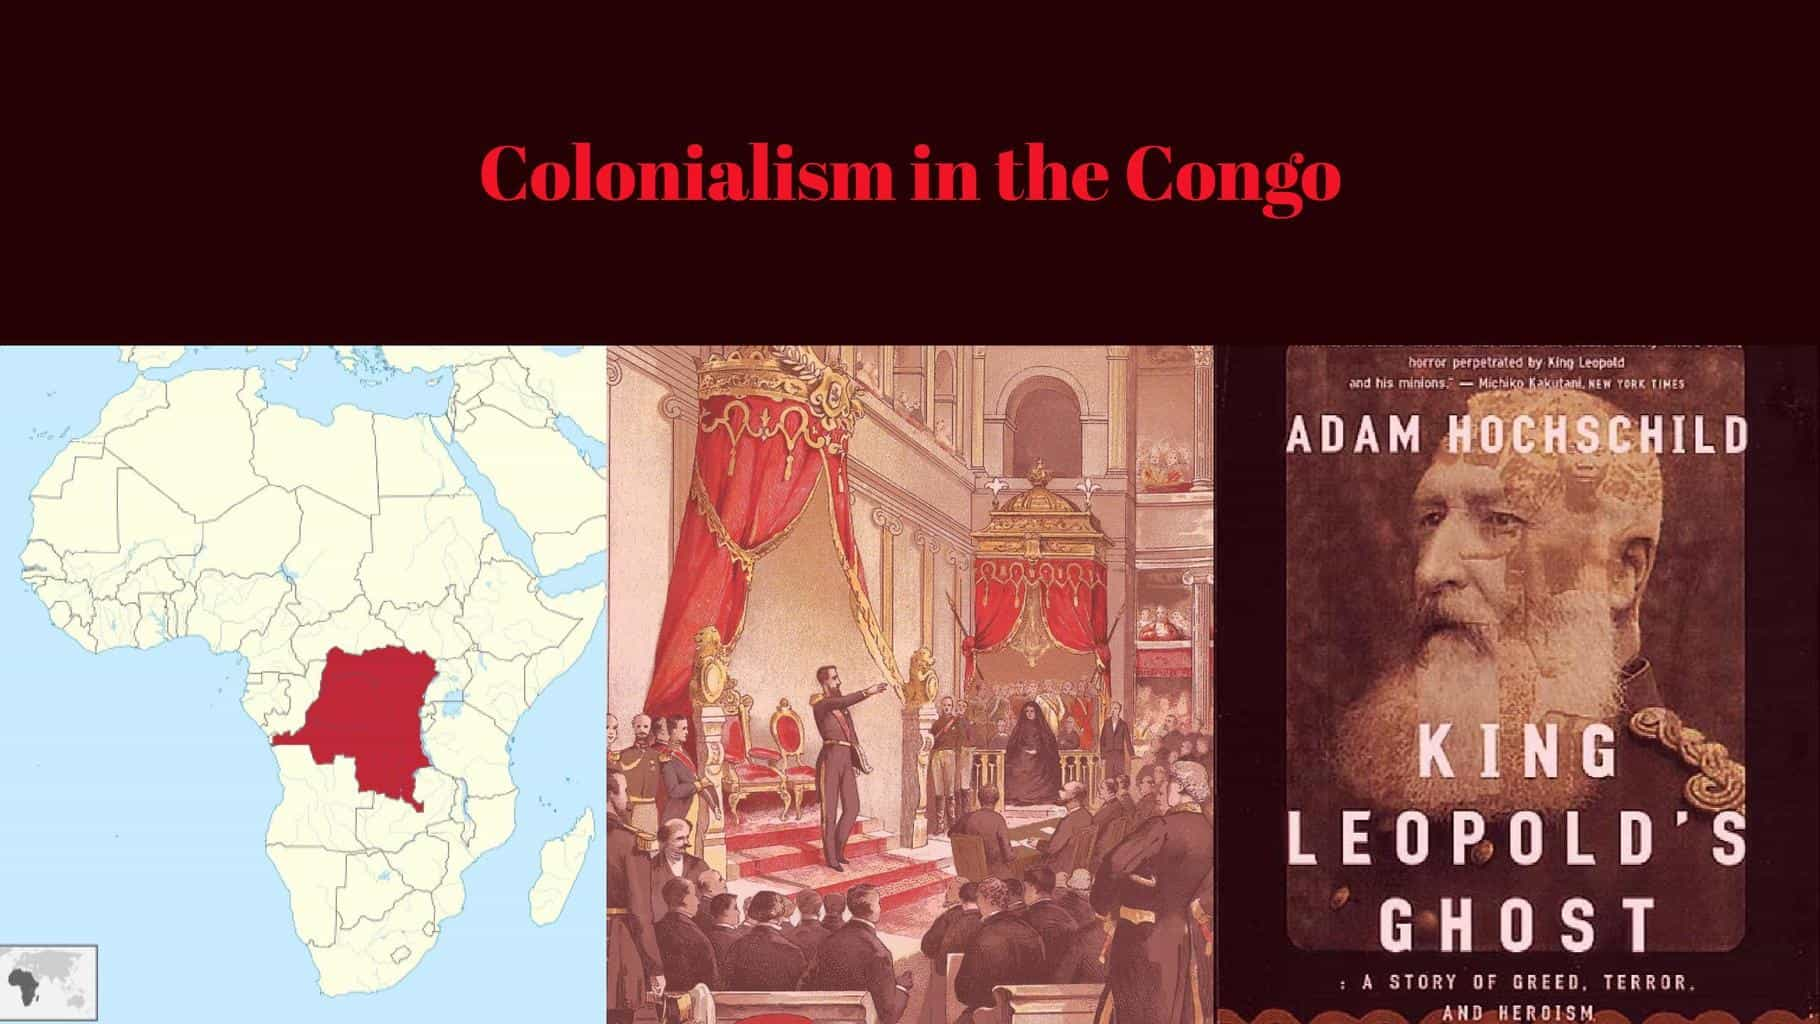 impact of colonialism essay Colonization of the americas by european nations was a significant historical event that began in the 15th century starting with portugal's forays into overseas exploration, the phenomenon soon spread to different european countries, with spain and portugal divvying up the south american continent.